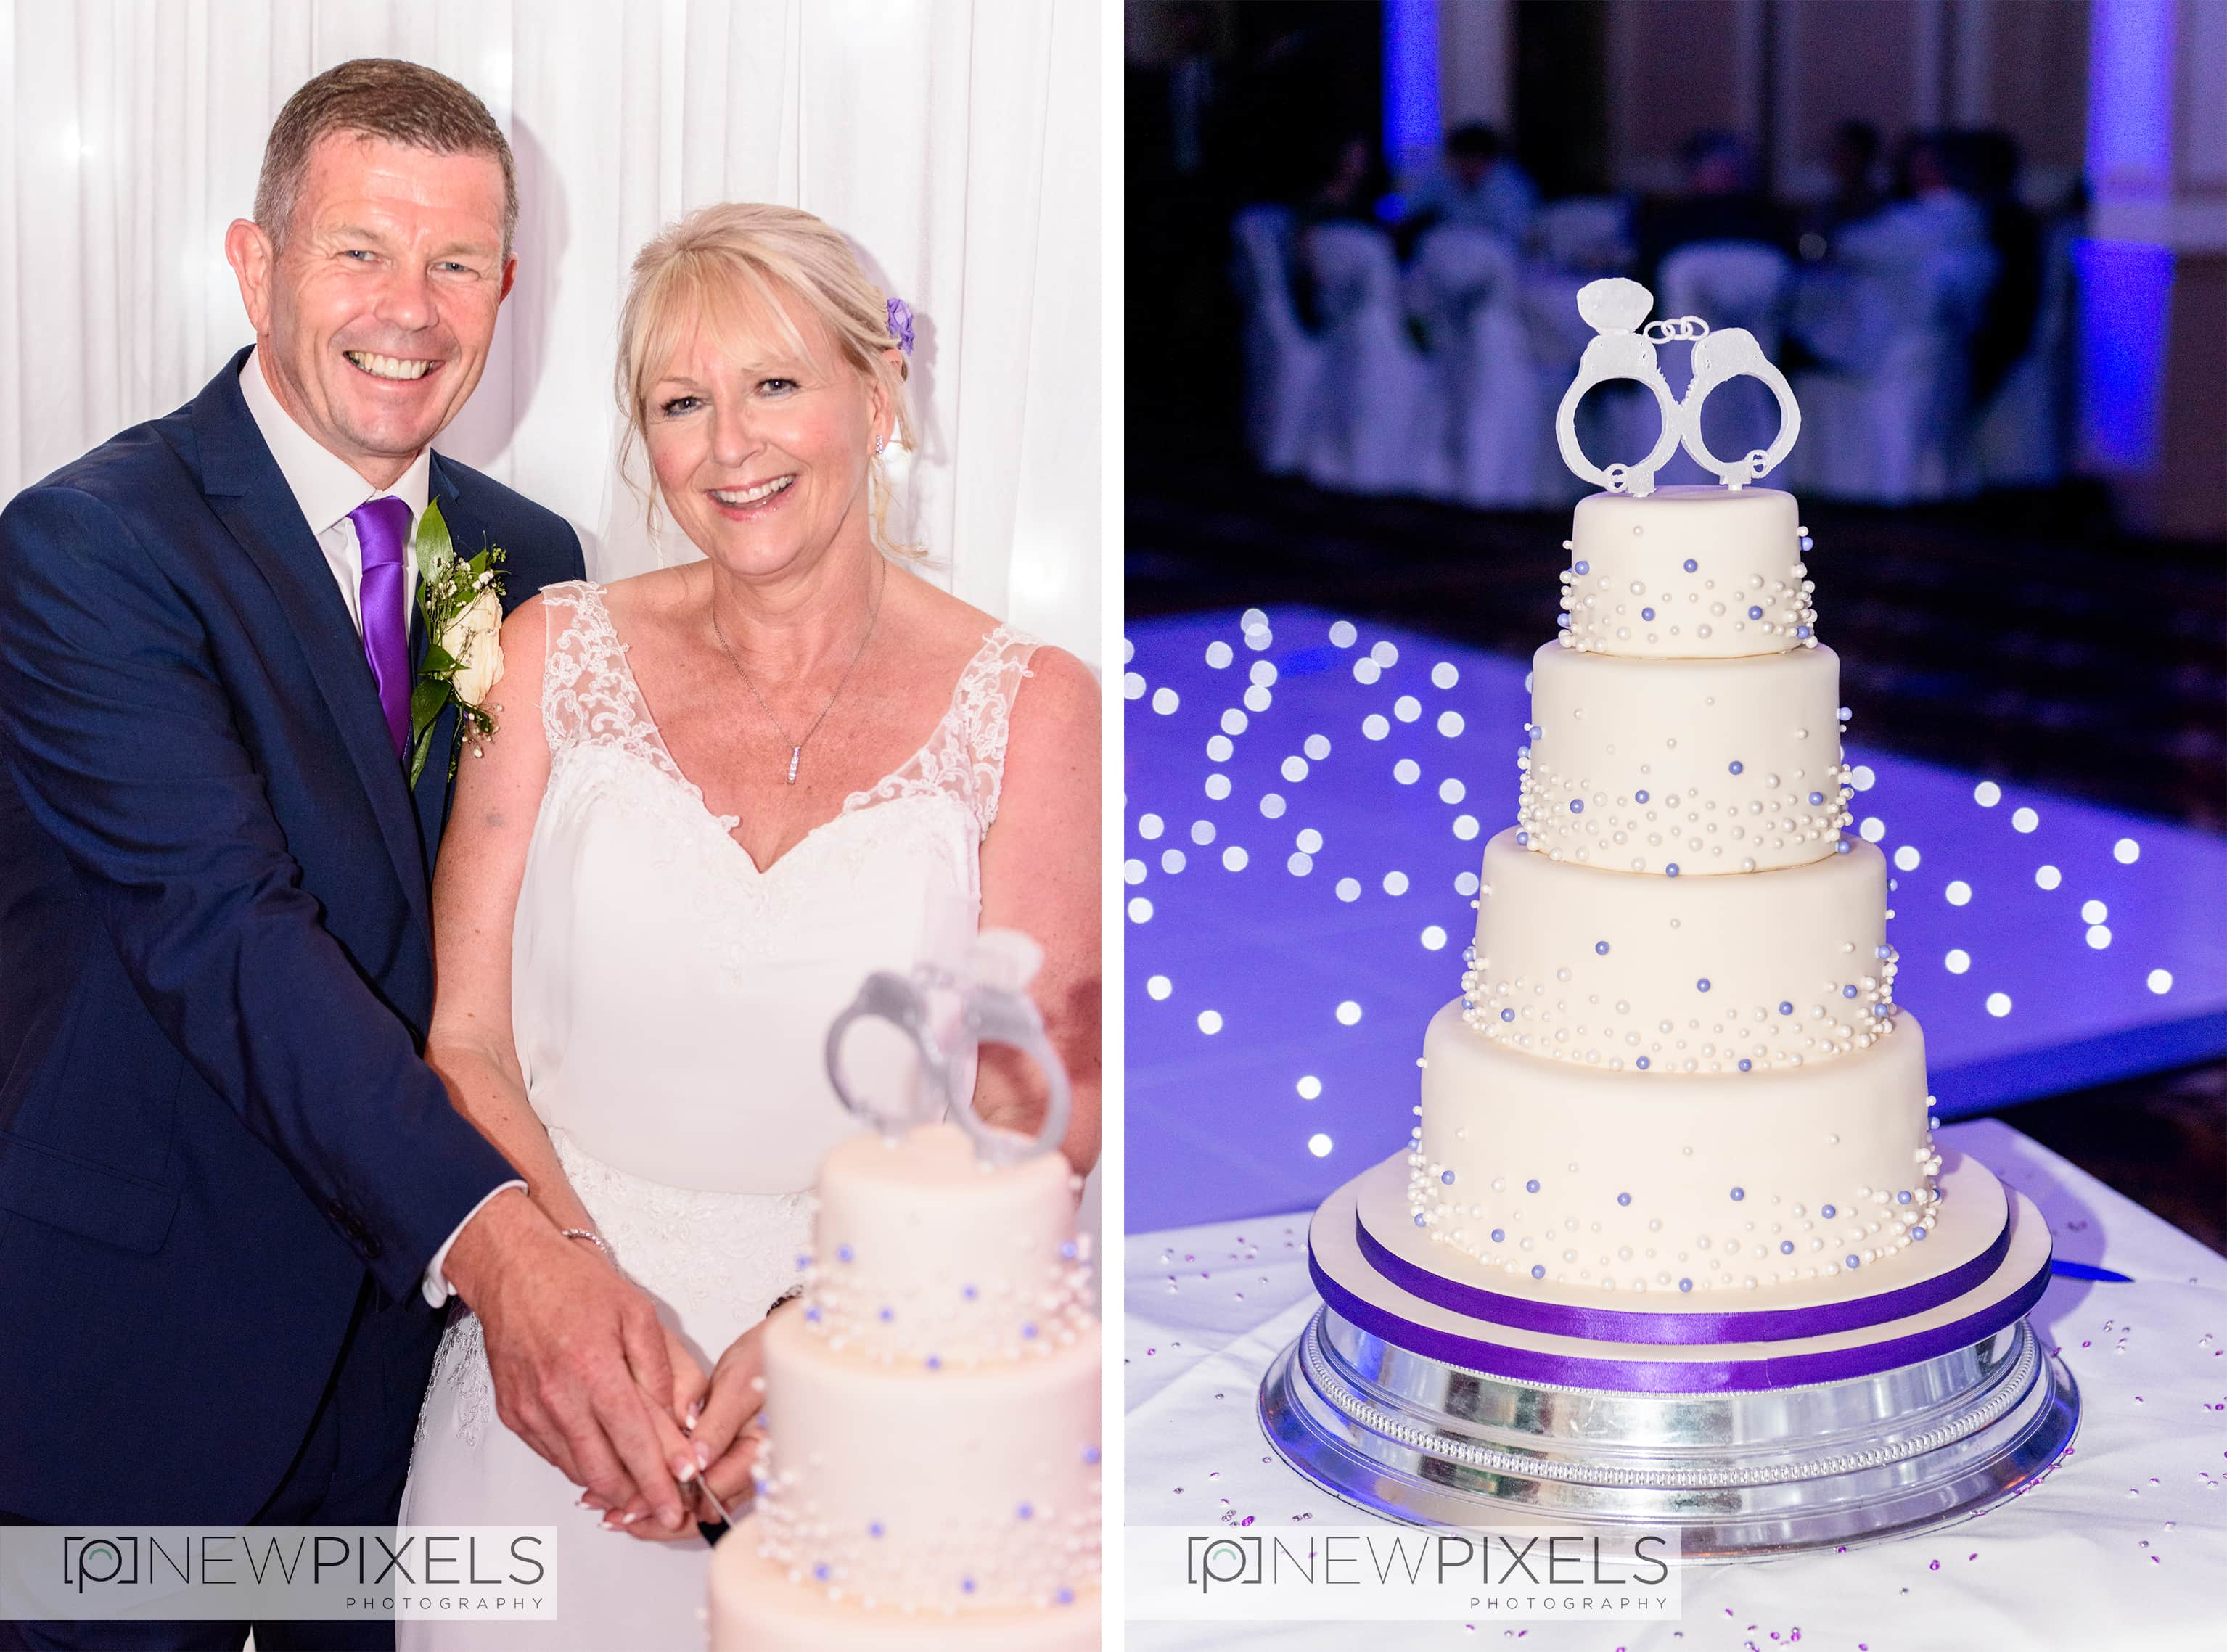 downhall wedding photographer7